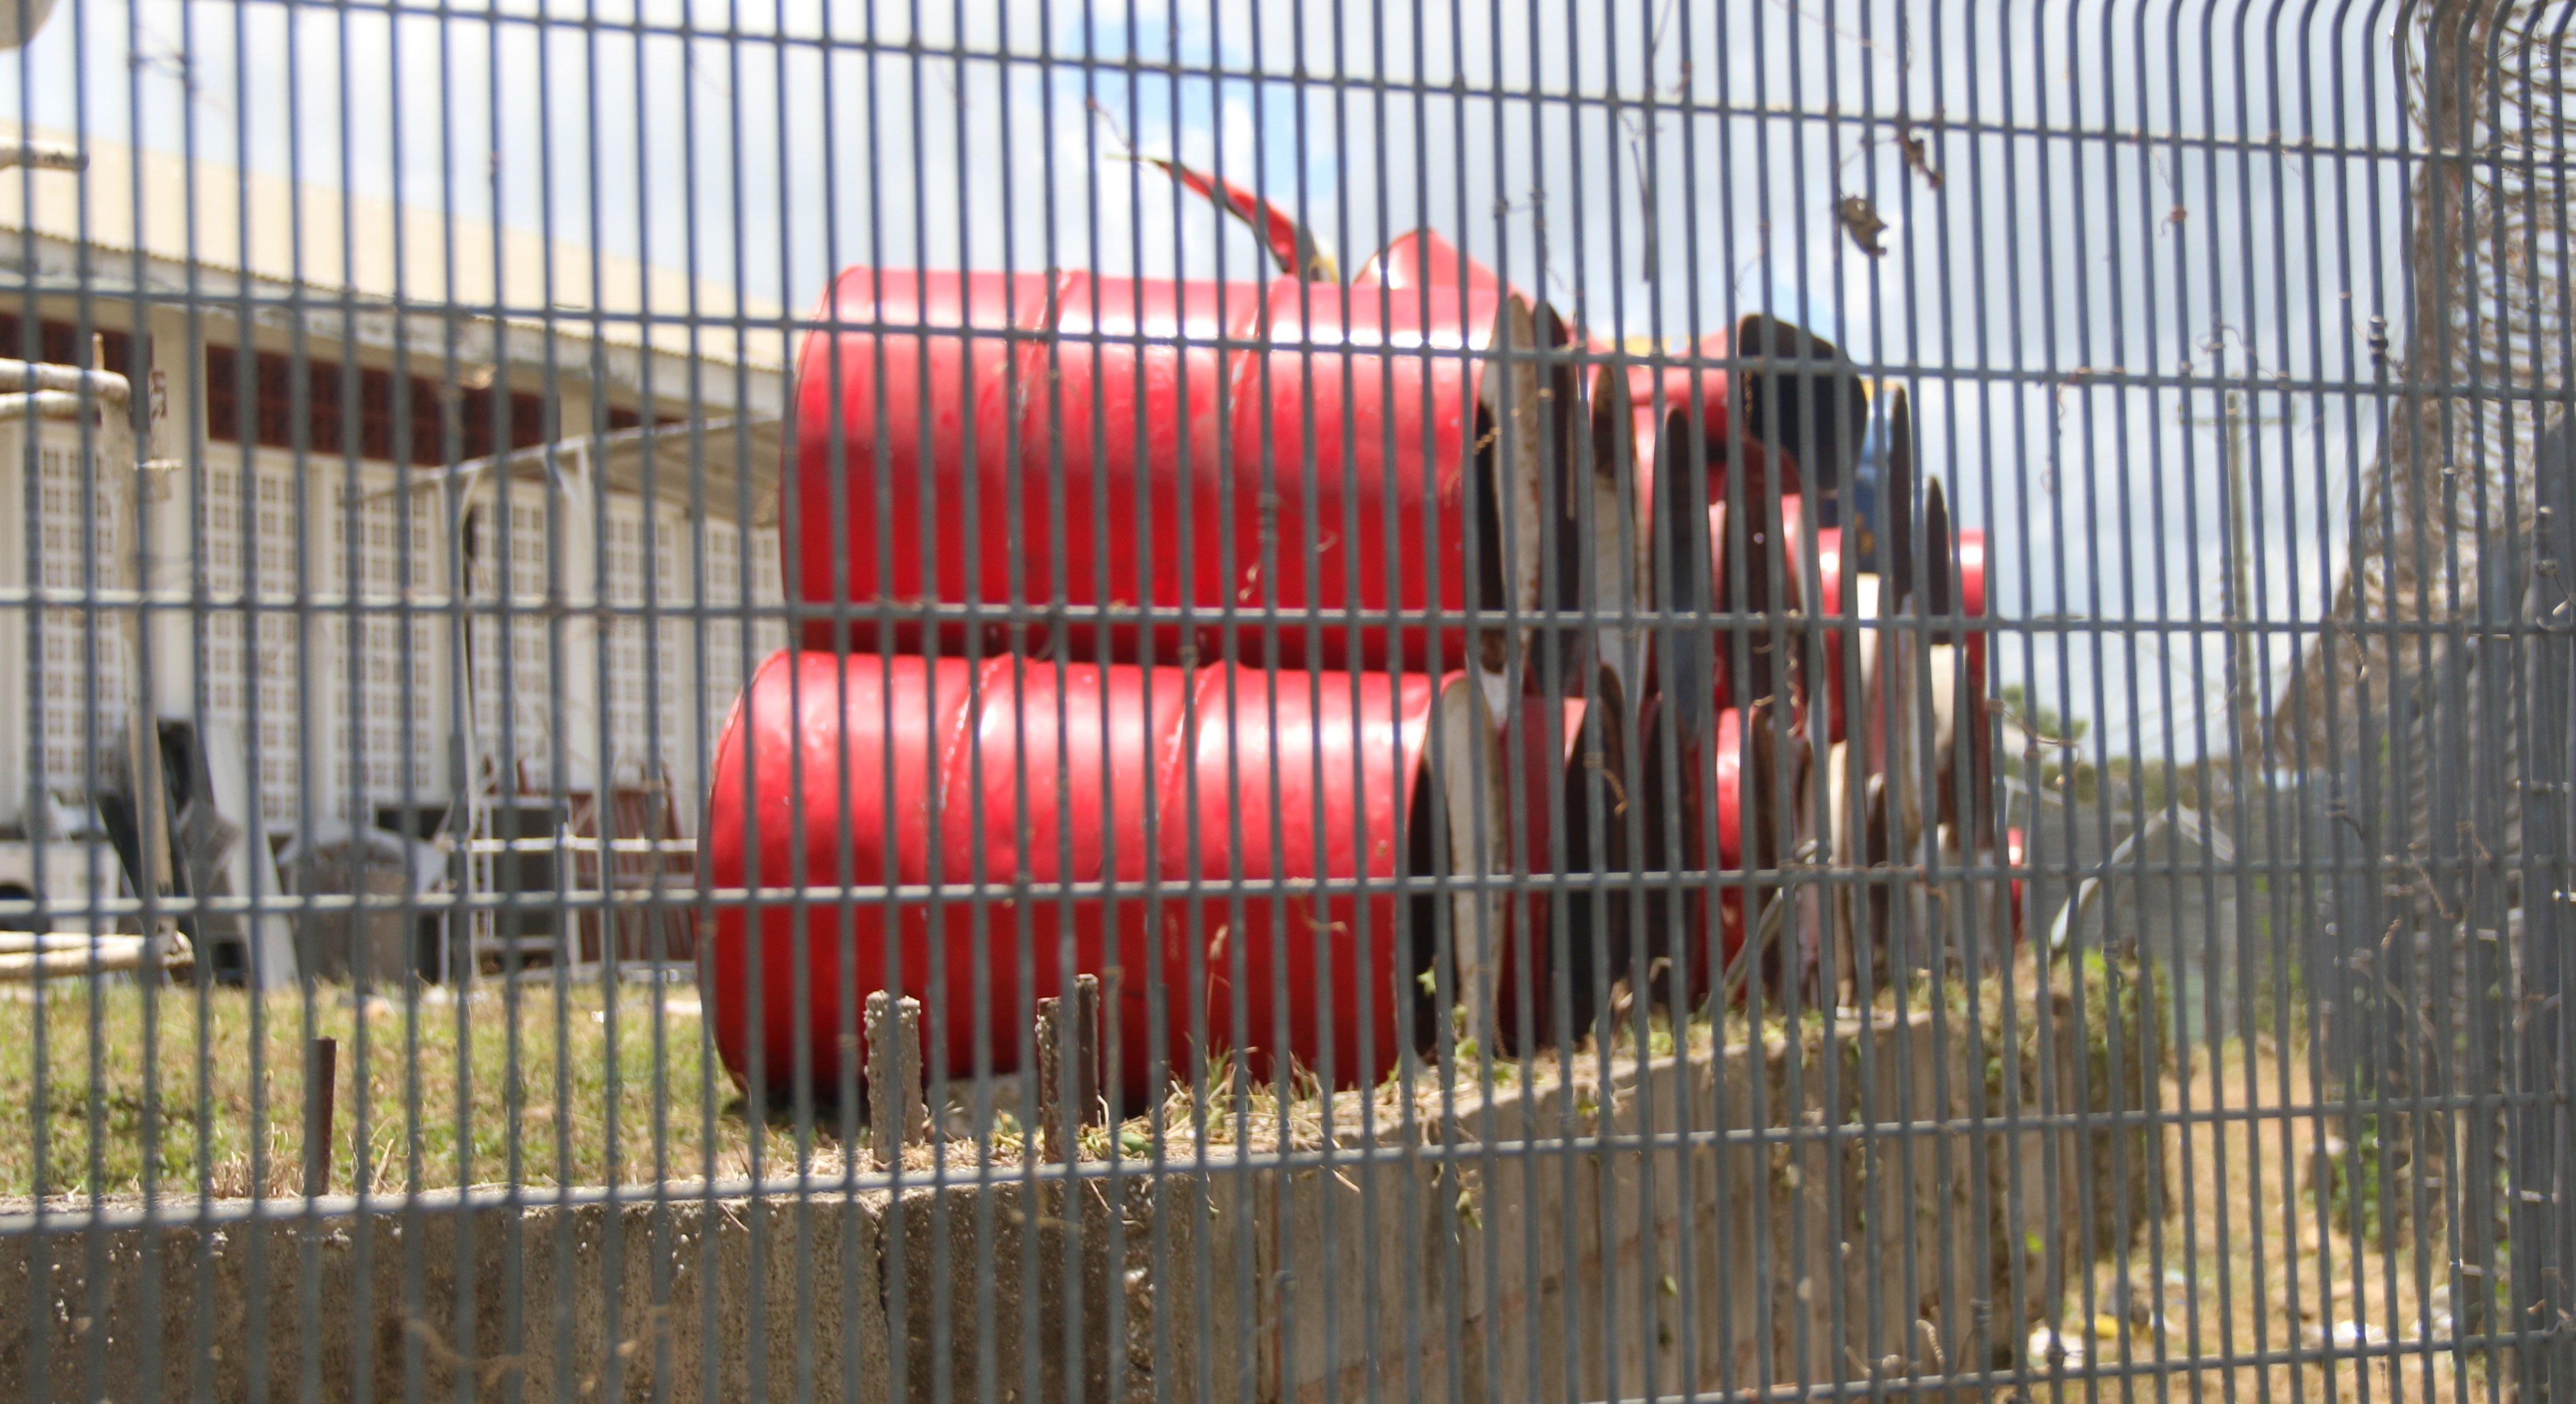 DUMPED: Some of the steelpans belonging to the Old Tech Steel Orchestra which have been dumped behind the San Fernando West Secondary School. PHOTO BY ANSEL JEBODH